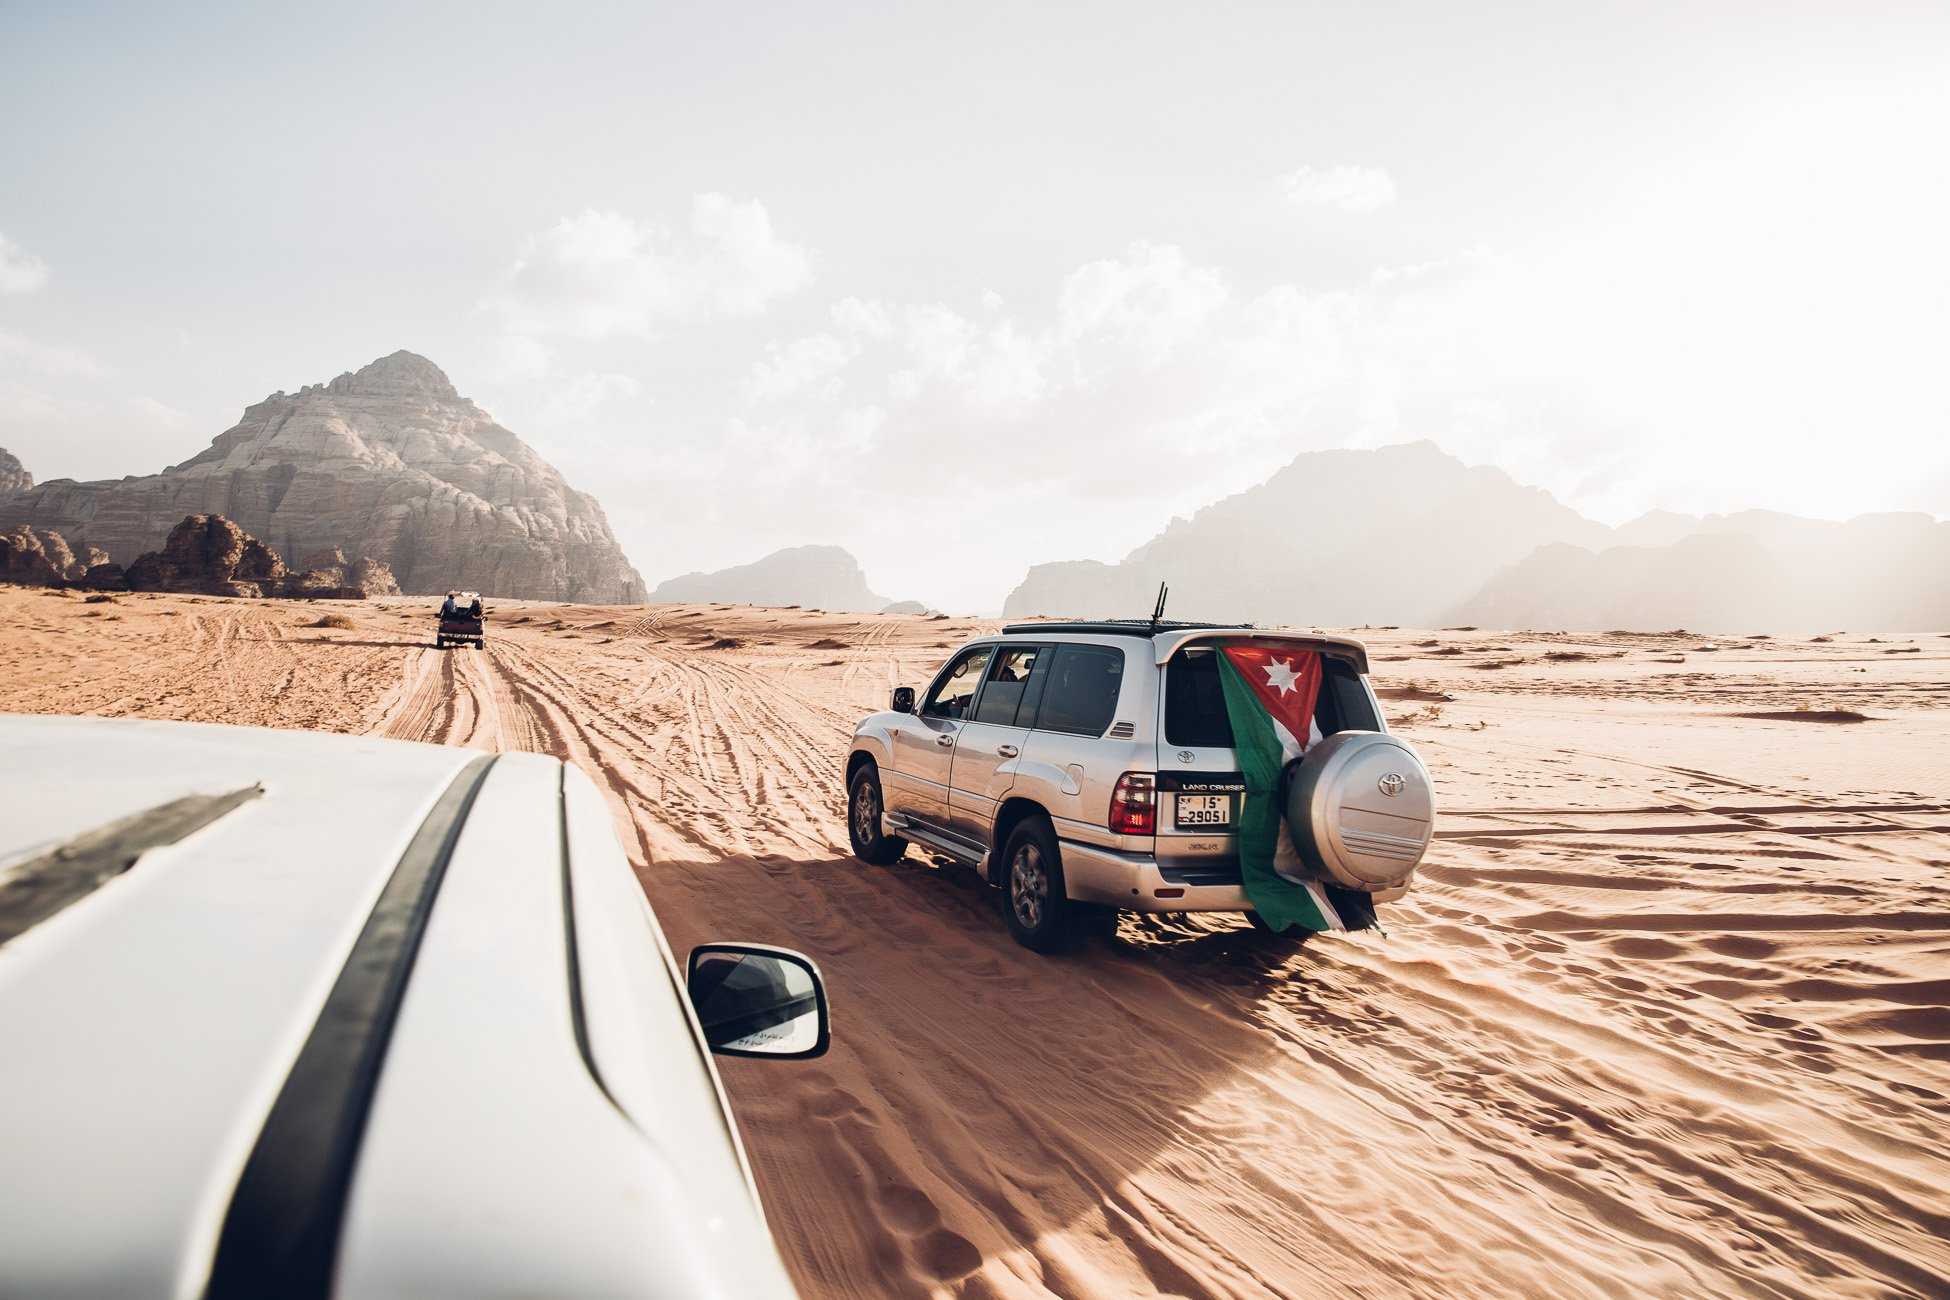 Jeep Safari in Wadi Rum Jordan